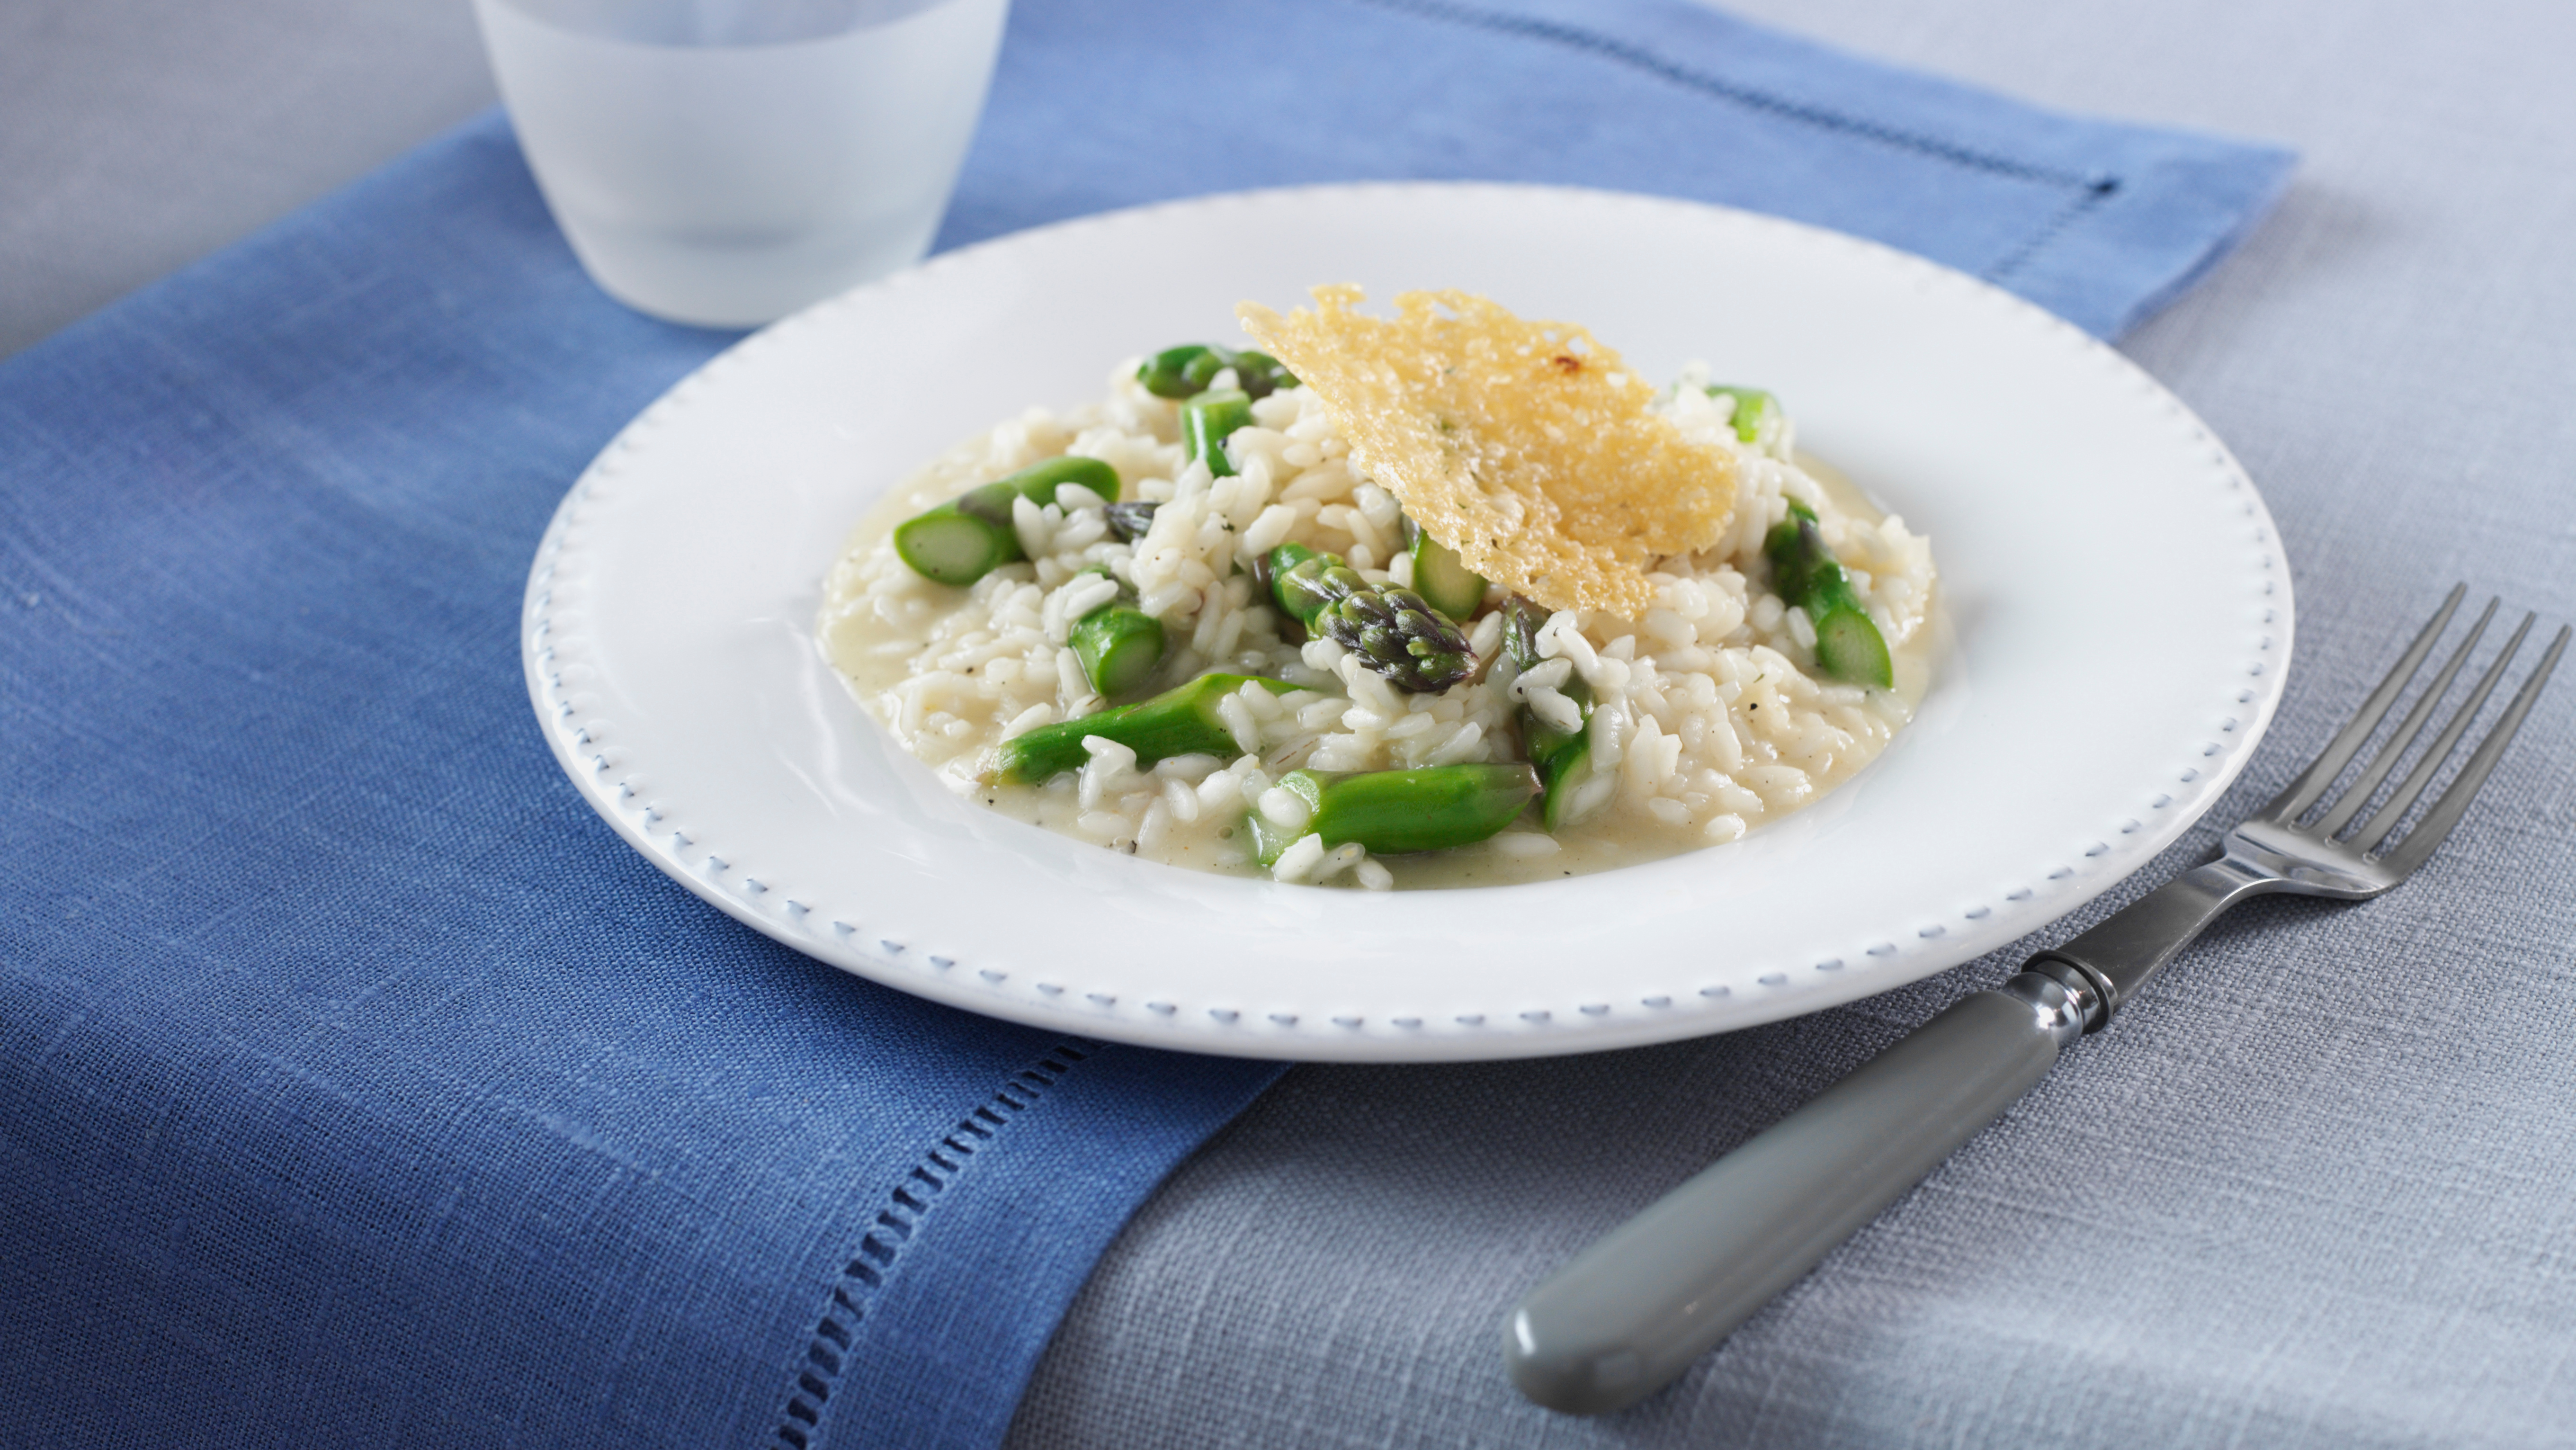 Creamy Asparagus Risotto with Roasted Monkfish Recipe